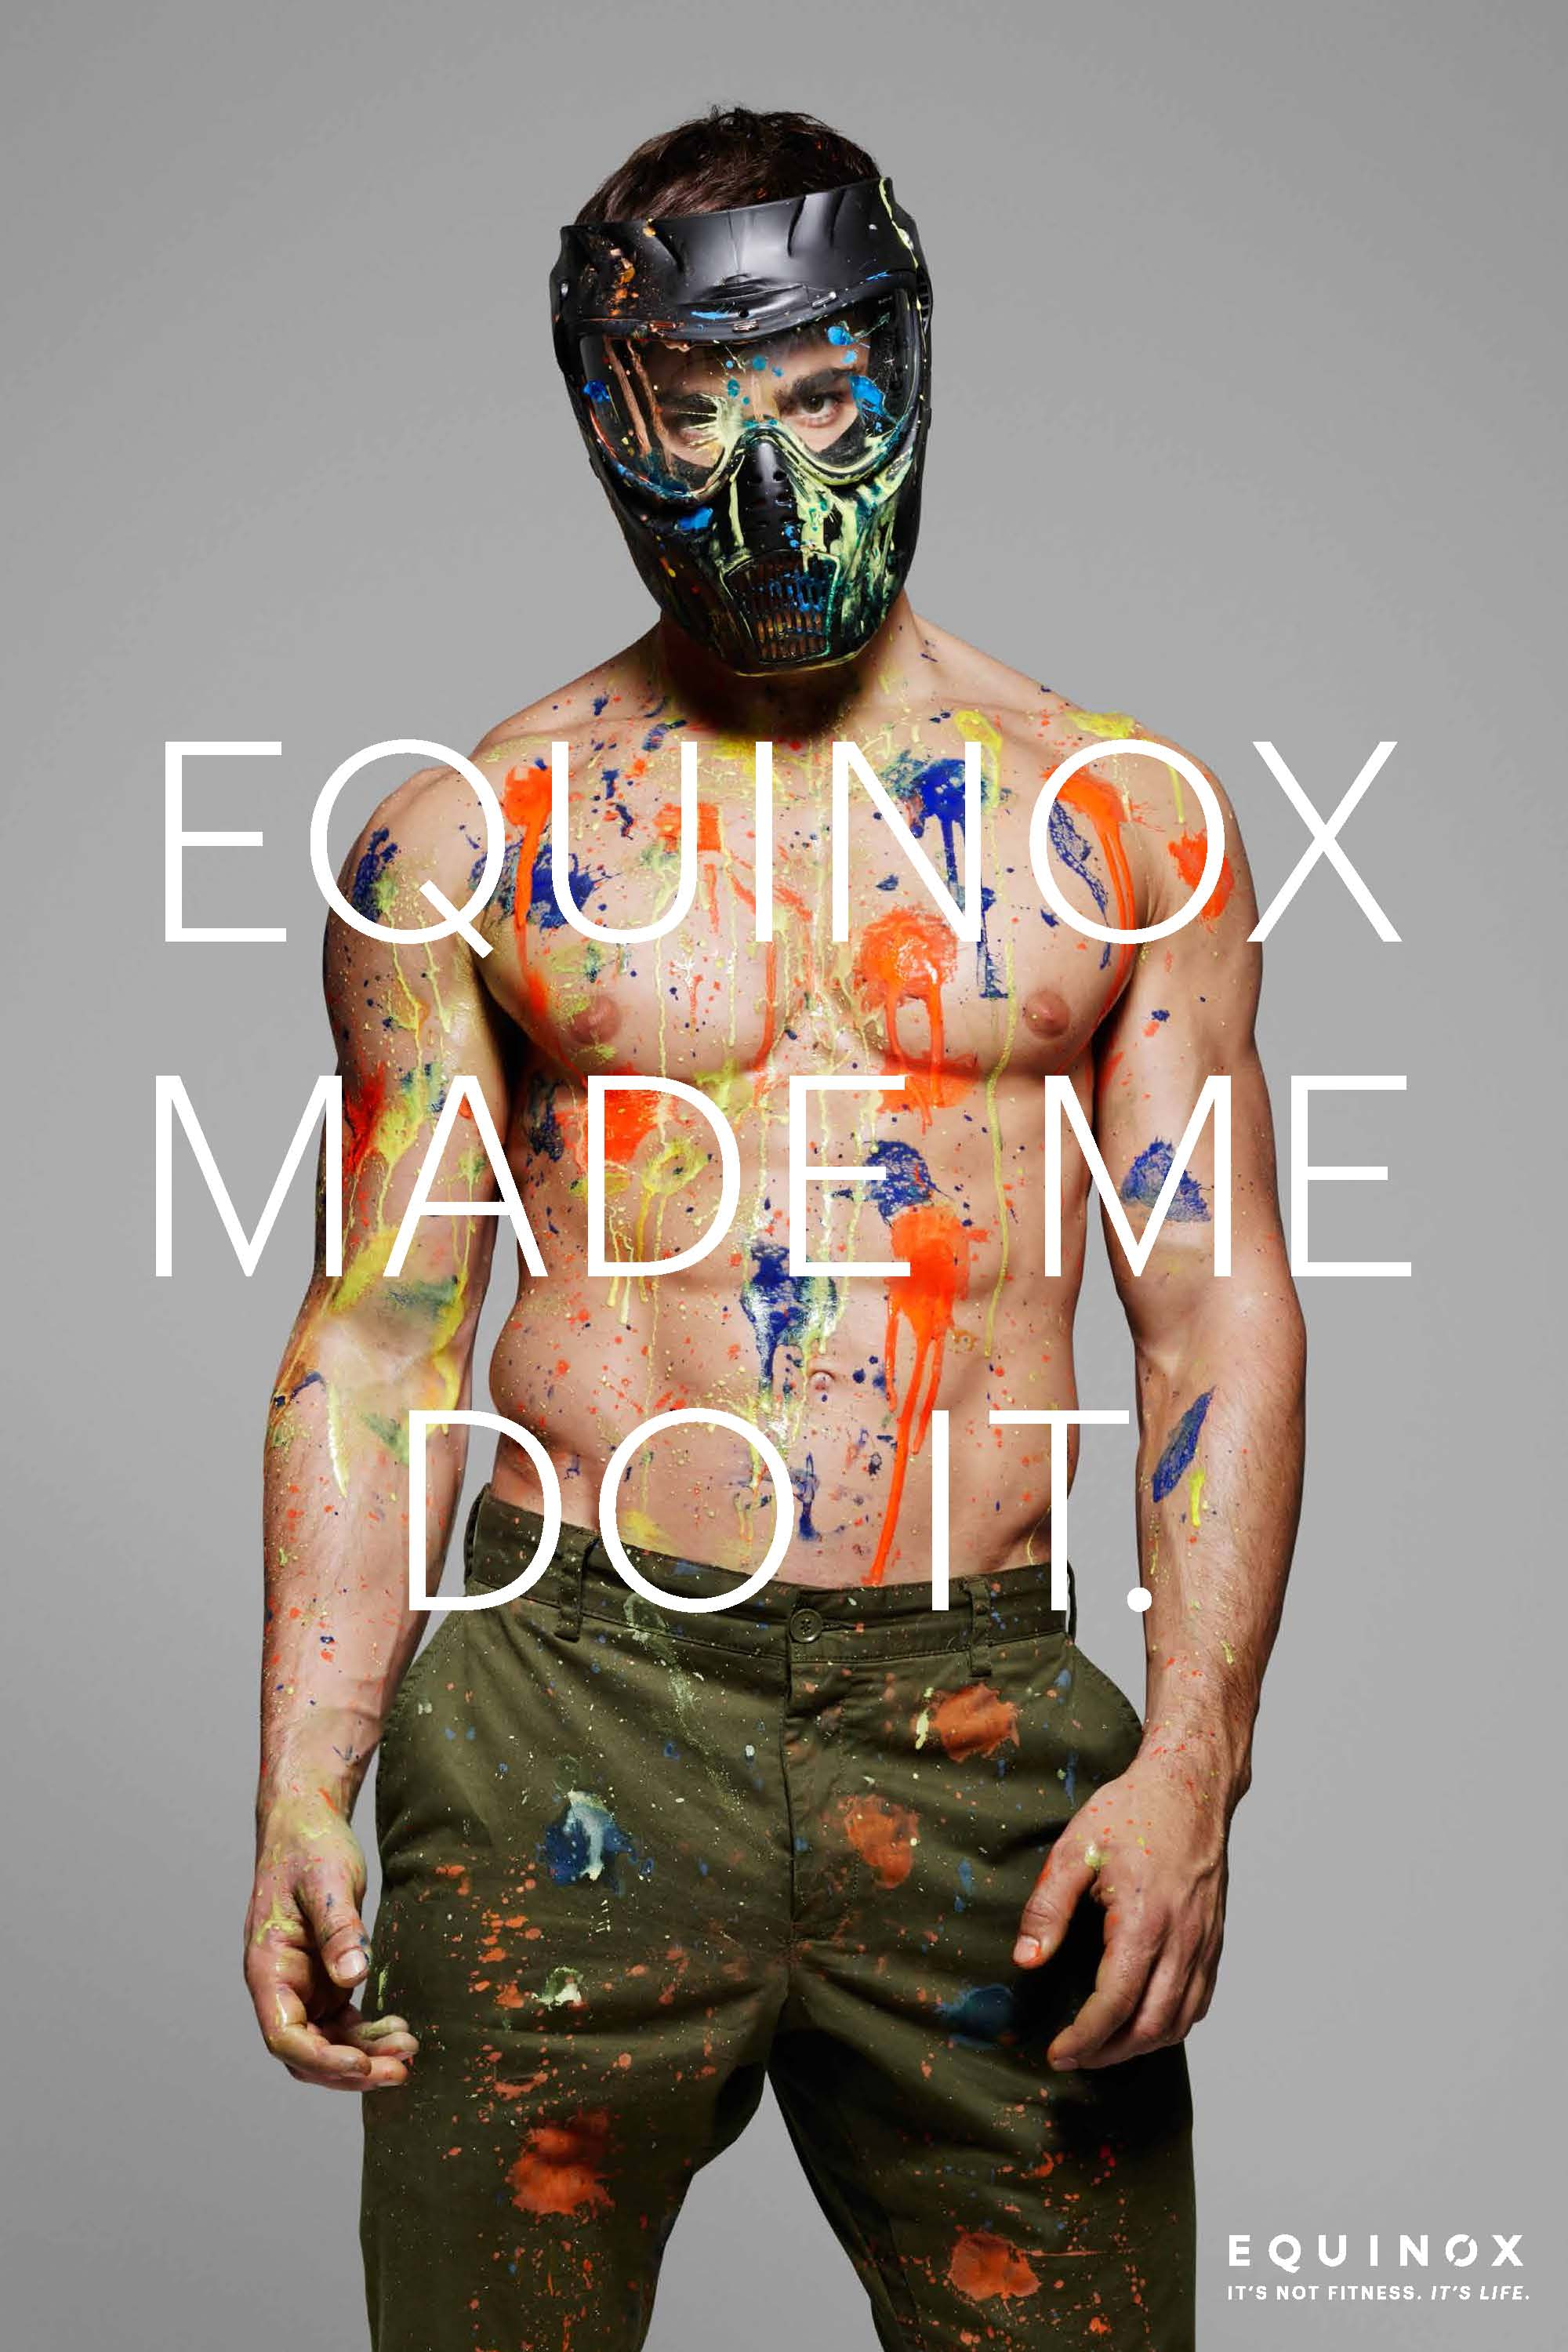 Equinox ad campaign 2015 Equinox Made Me Do It by Rankin 07